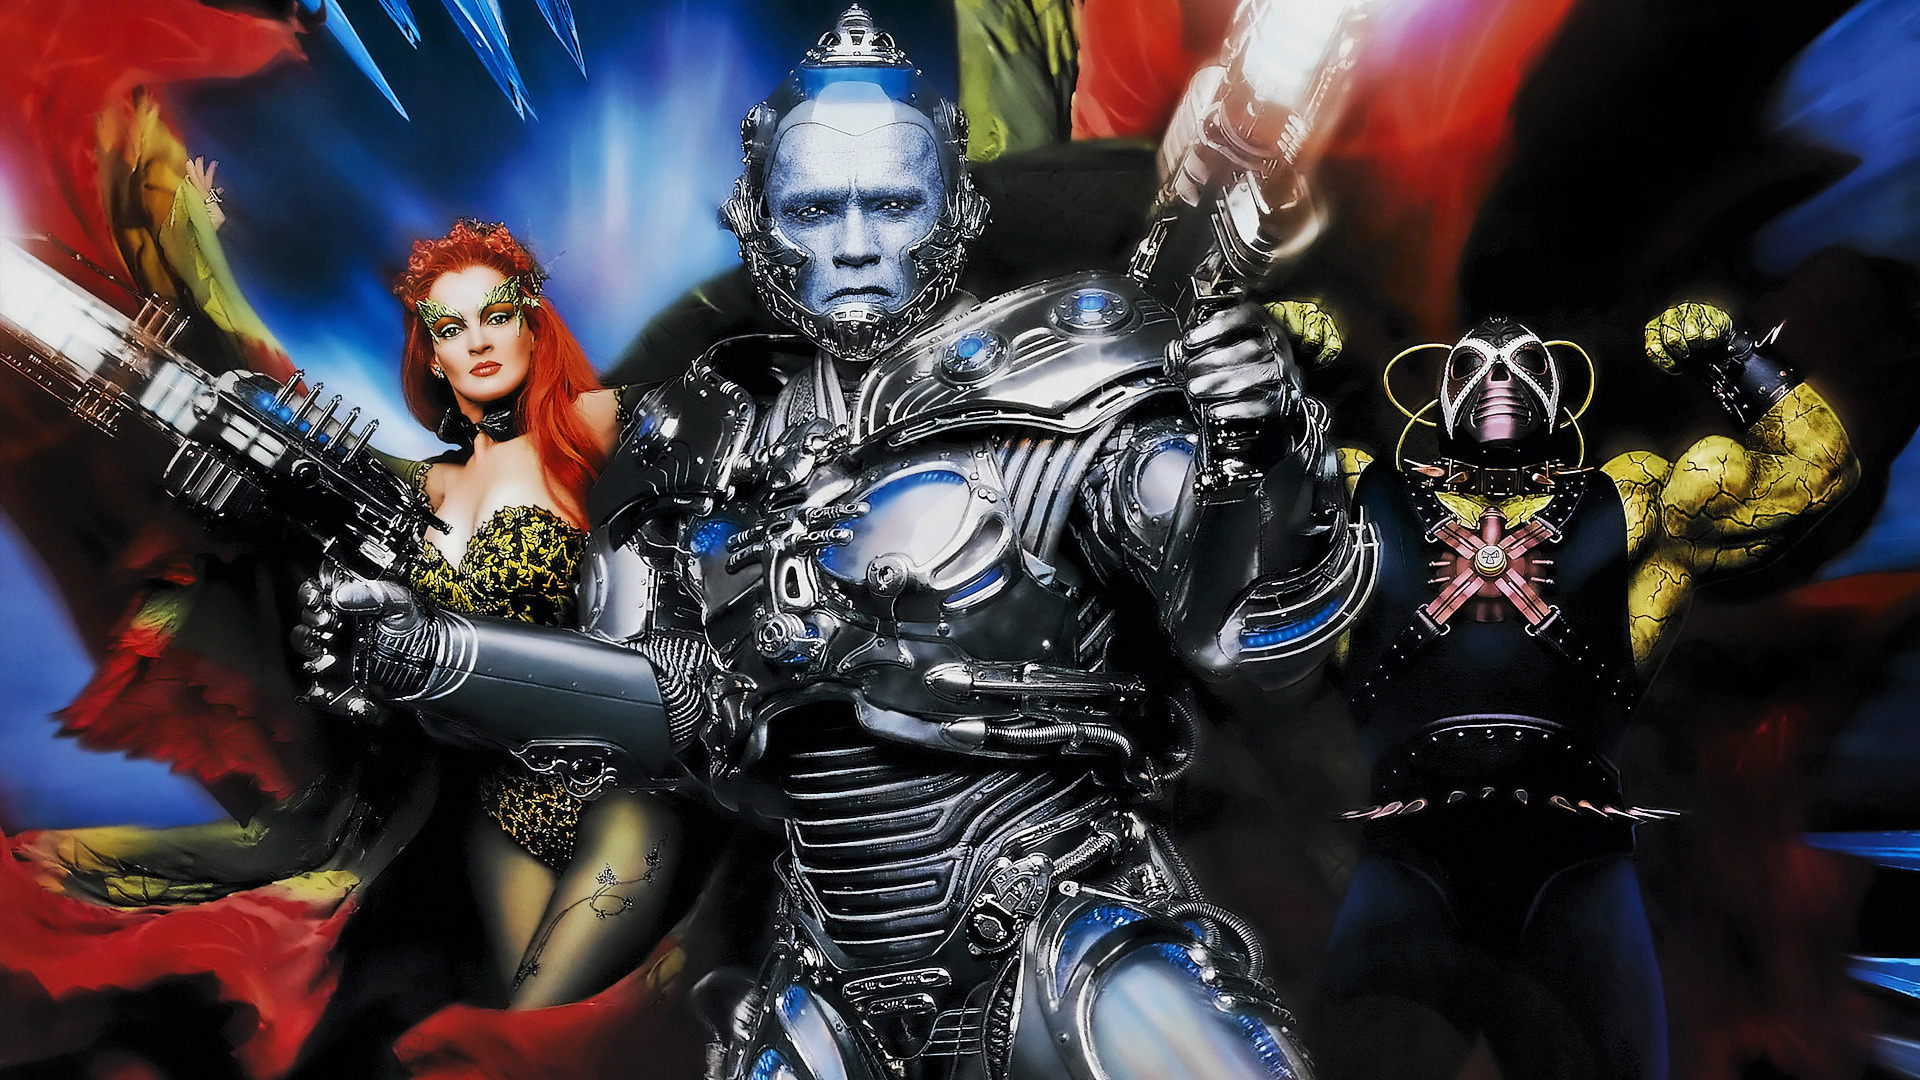 Poison Ivy, Mr Freeze and Bane in Batman & Robin (1997)